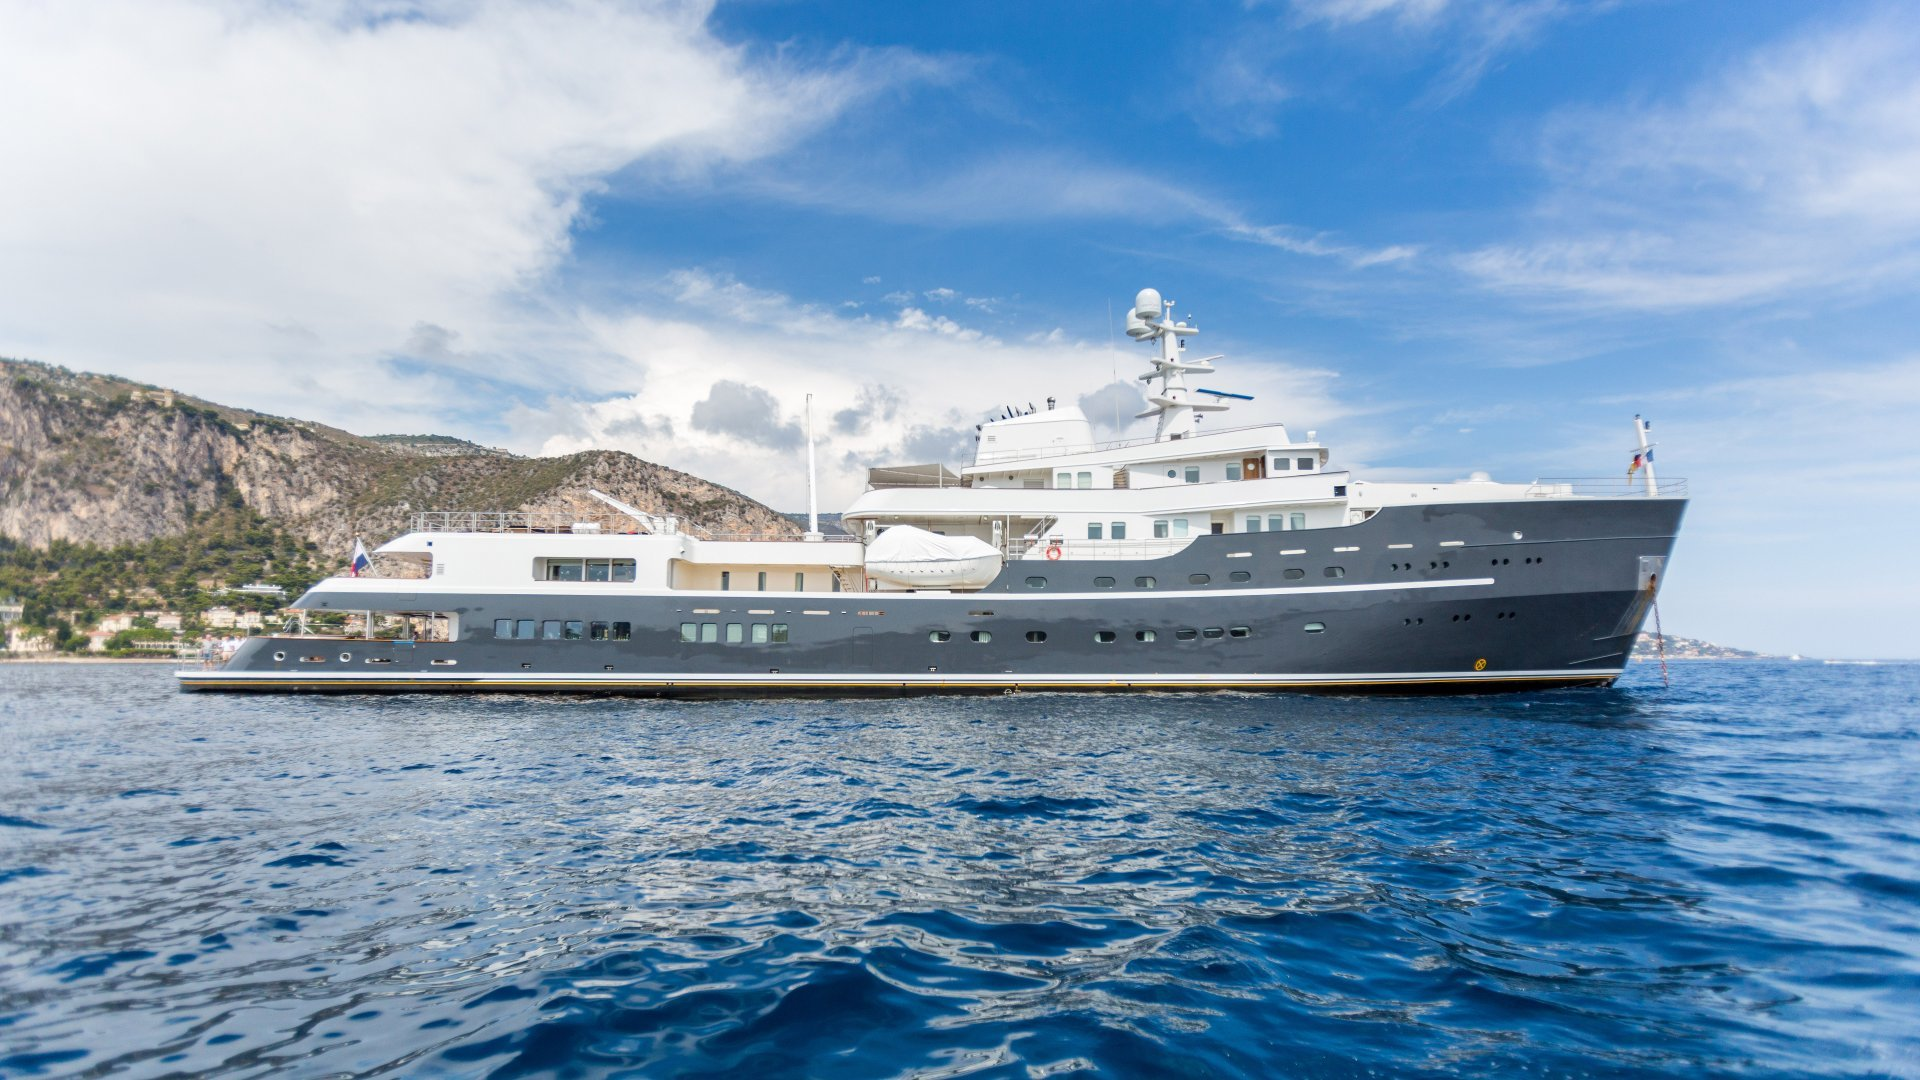 CHARTER - yacht legend 201611 profile 02 583d4d23af394 v default big 1